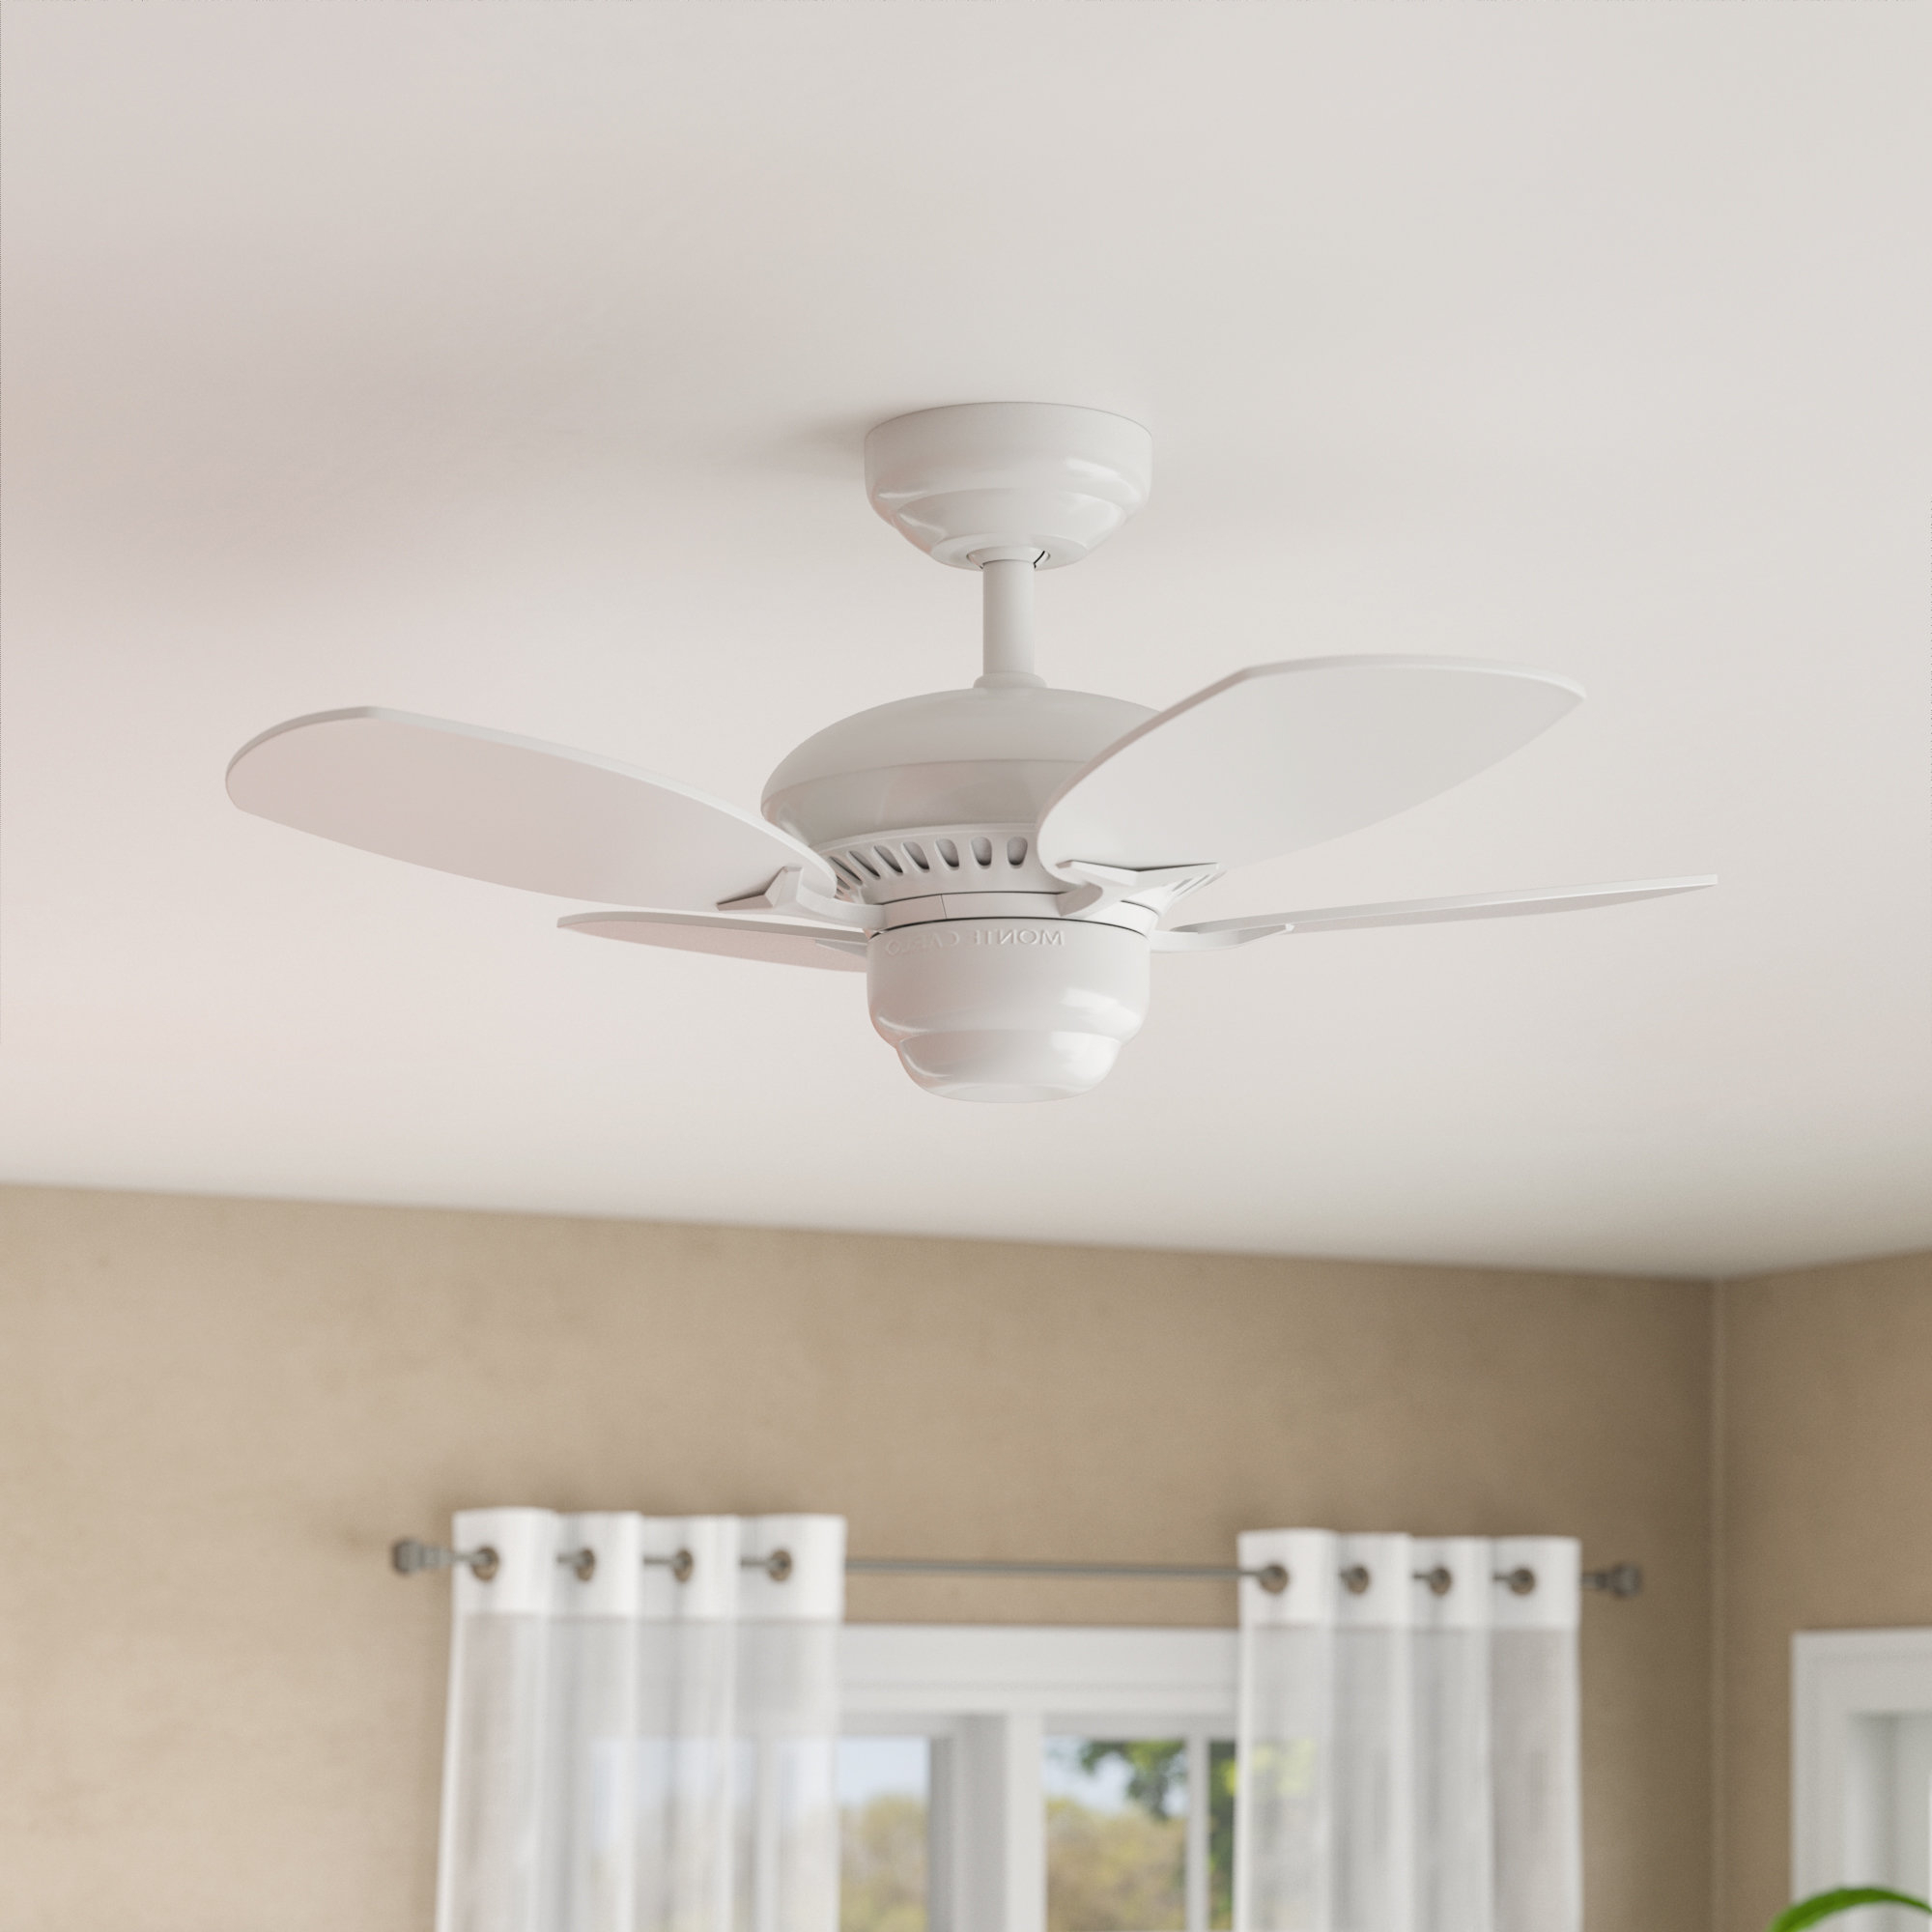 "Charlton Home 28"" Stewardson 4 Blade Ceiling Fan With Regard To Recent Stewardson 4 Blade Ceiling Fans (View 2 of 20)"